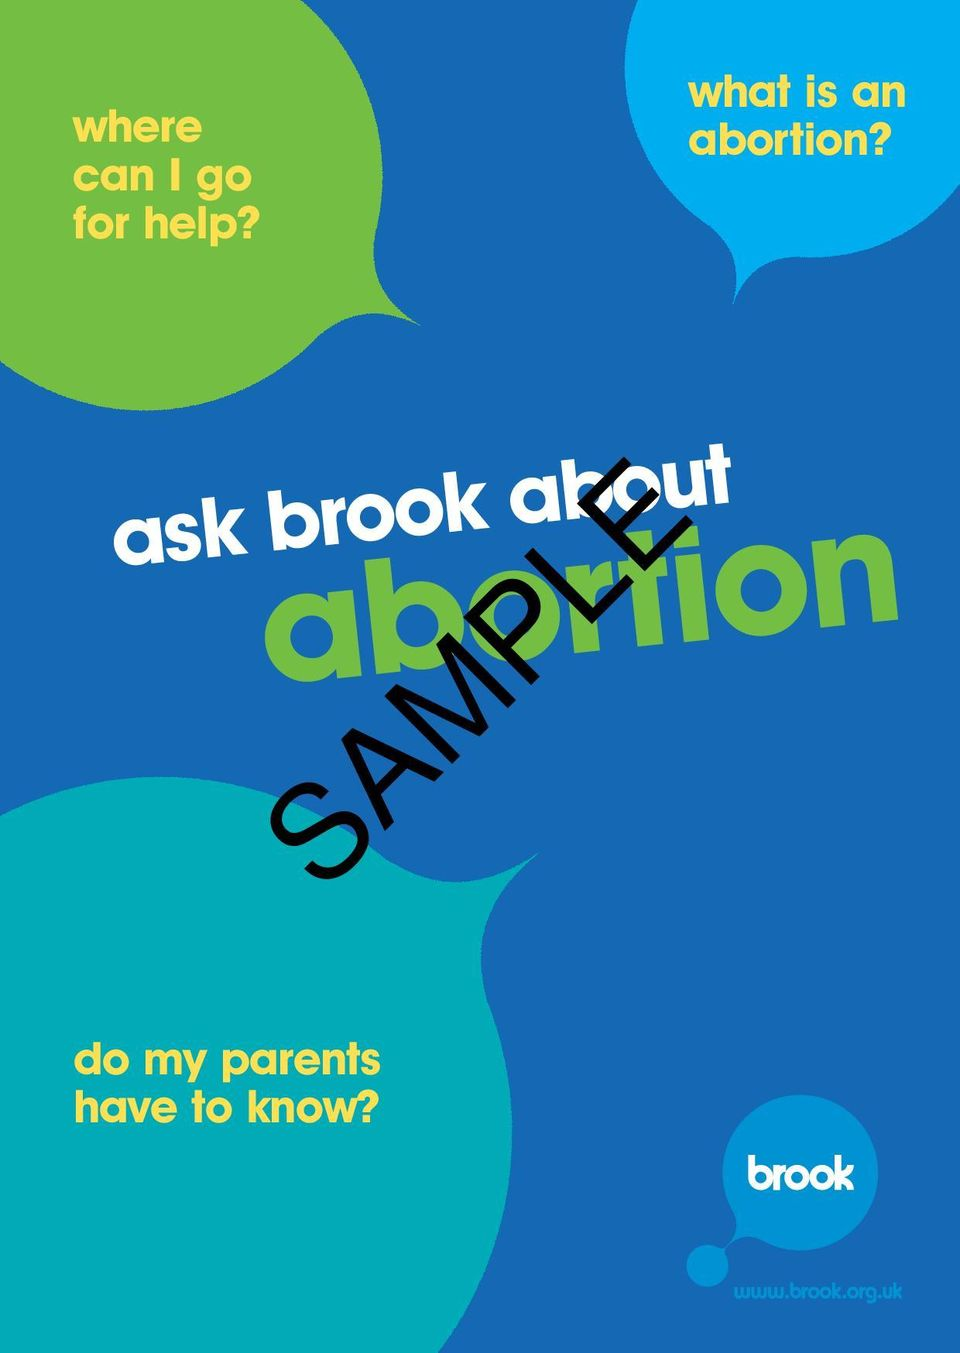 ask brook about abortion